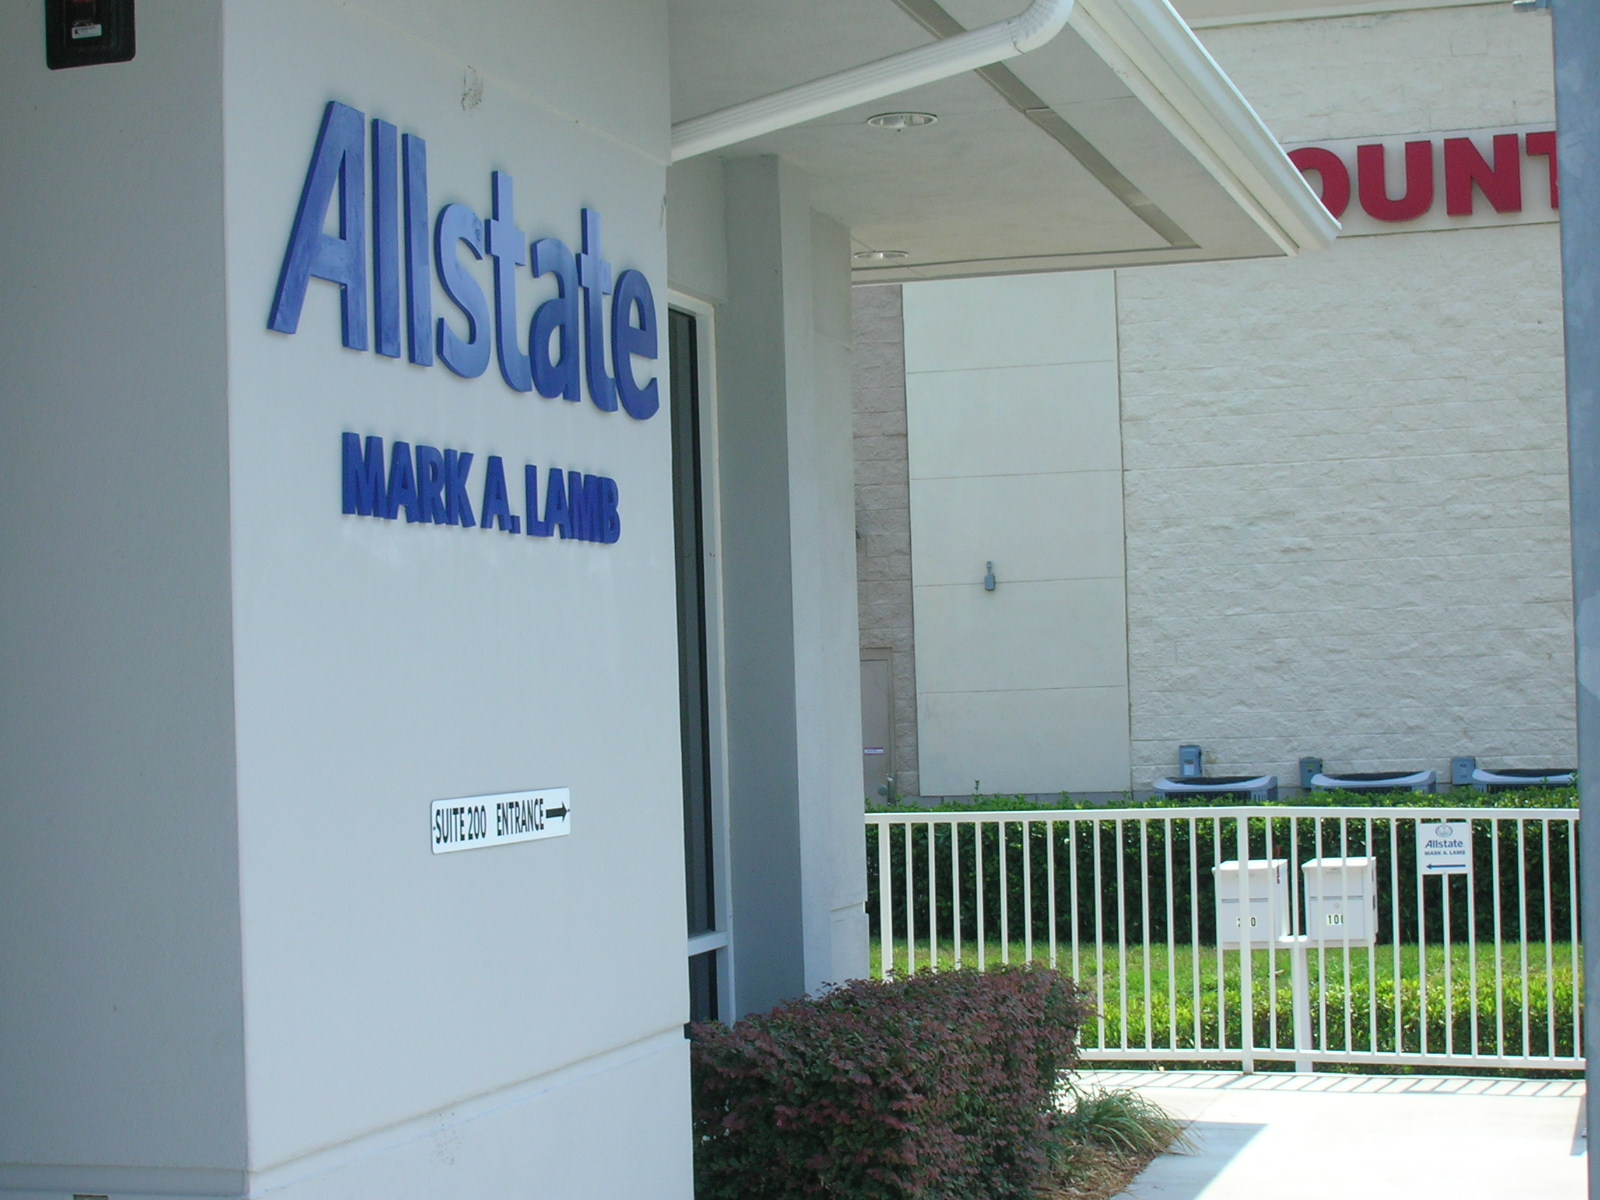 Mark A. Lamb: Allstate Insurance image 2